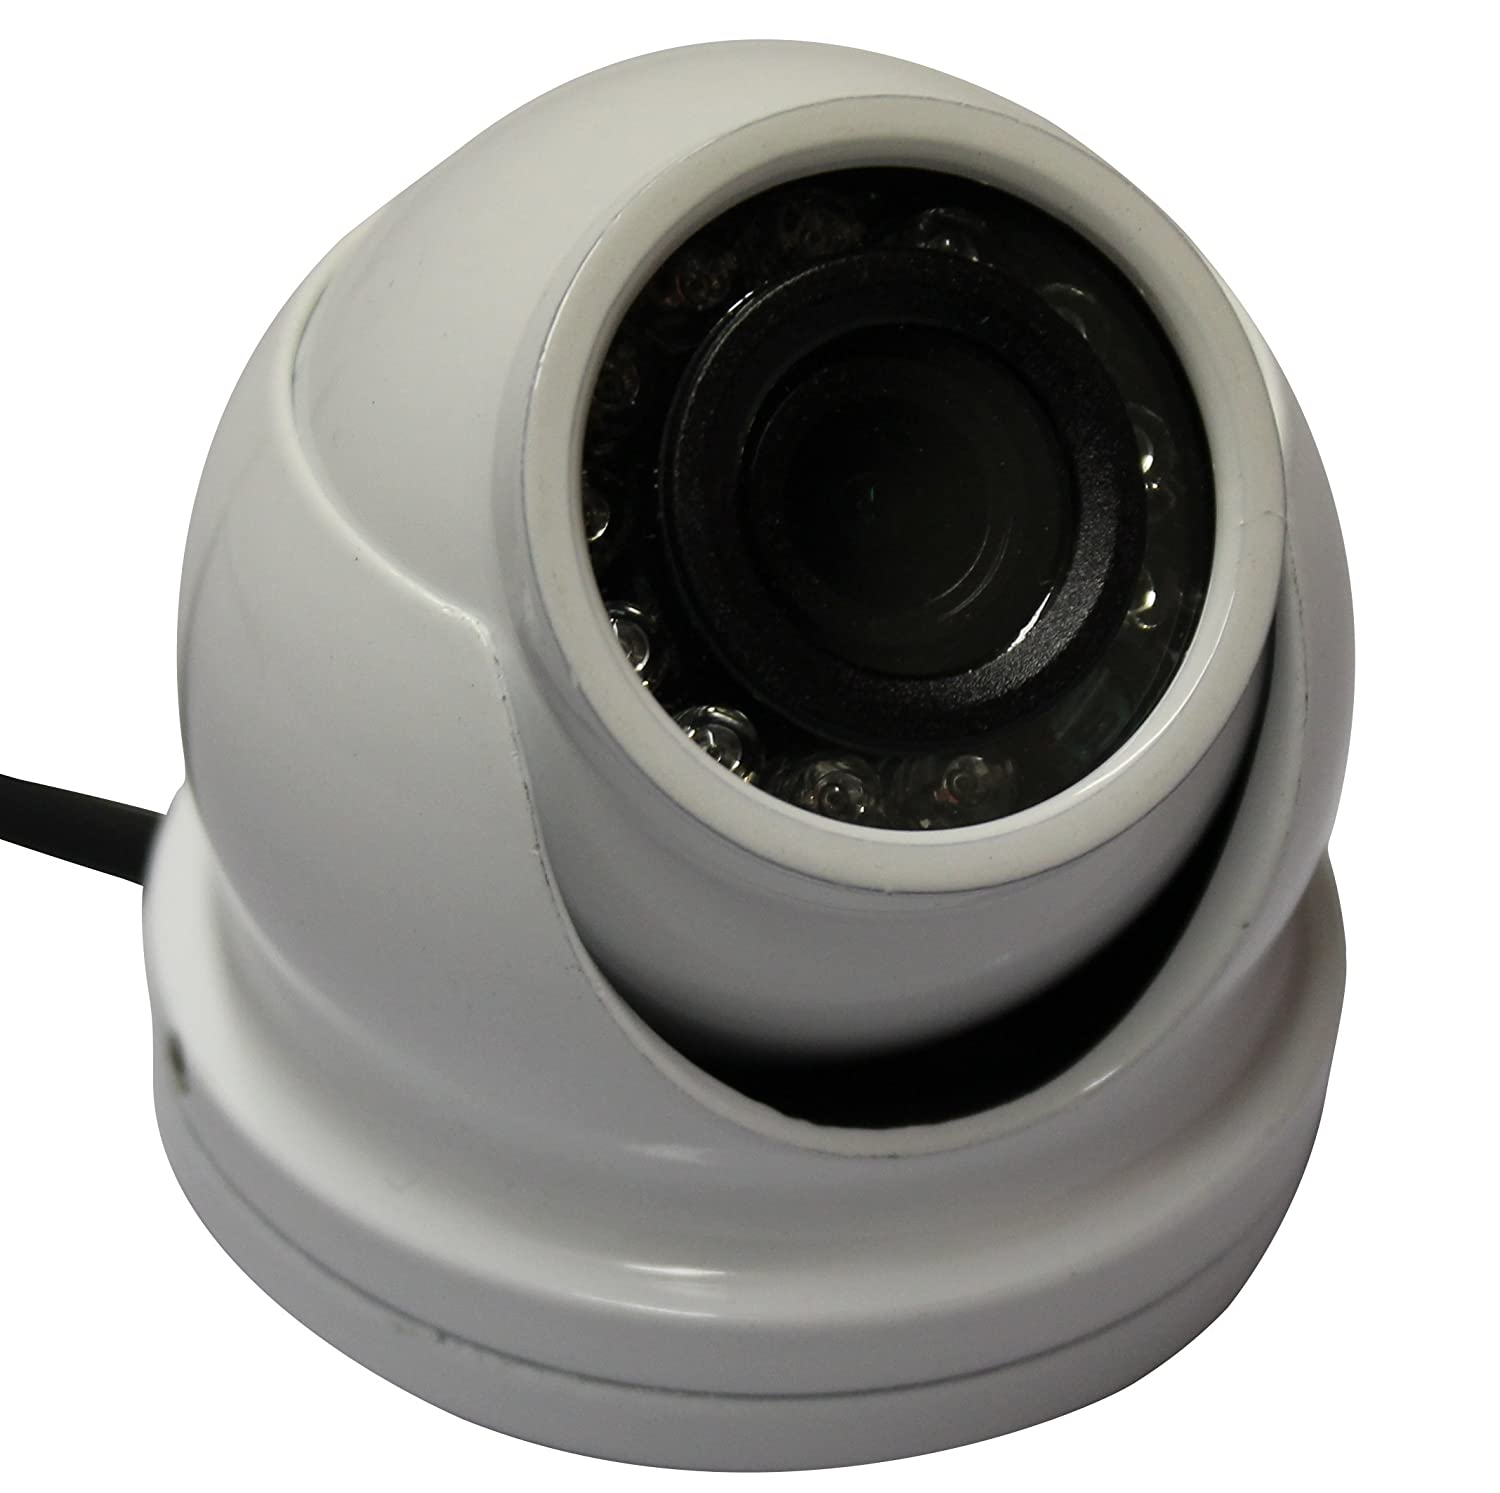 Kenuco 1080p HD TVI IR Mini Dome Camera : White, 2.8mm Lens [並行輸入品] B01N9NL74J